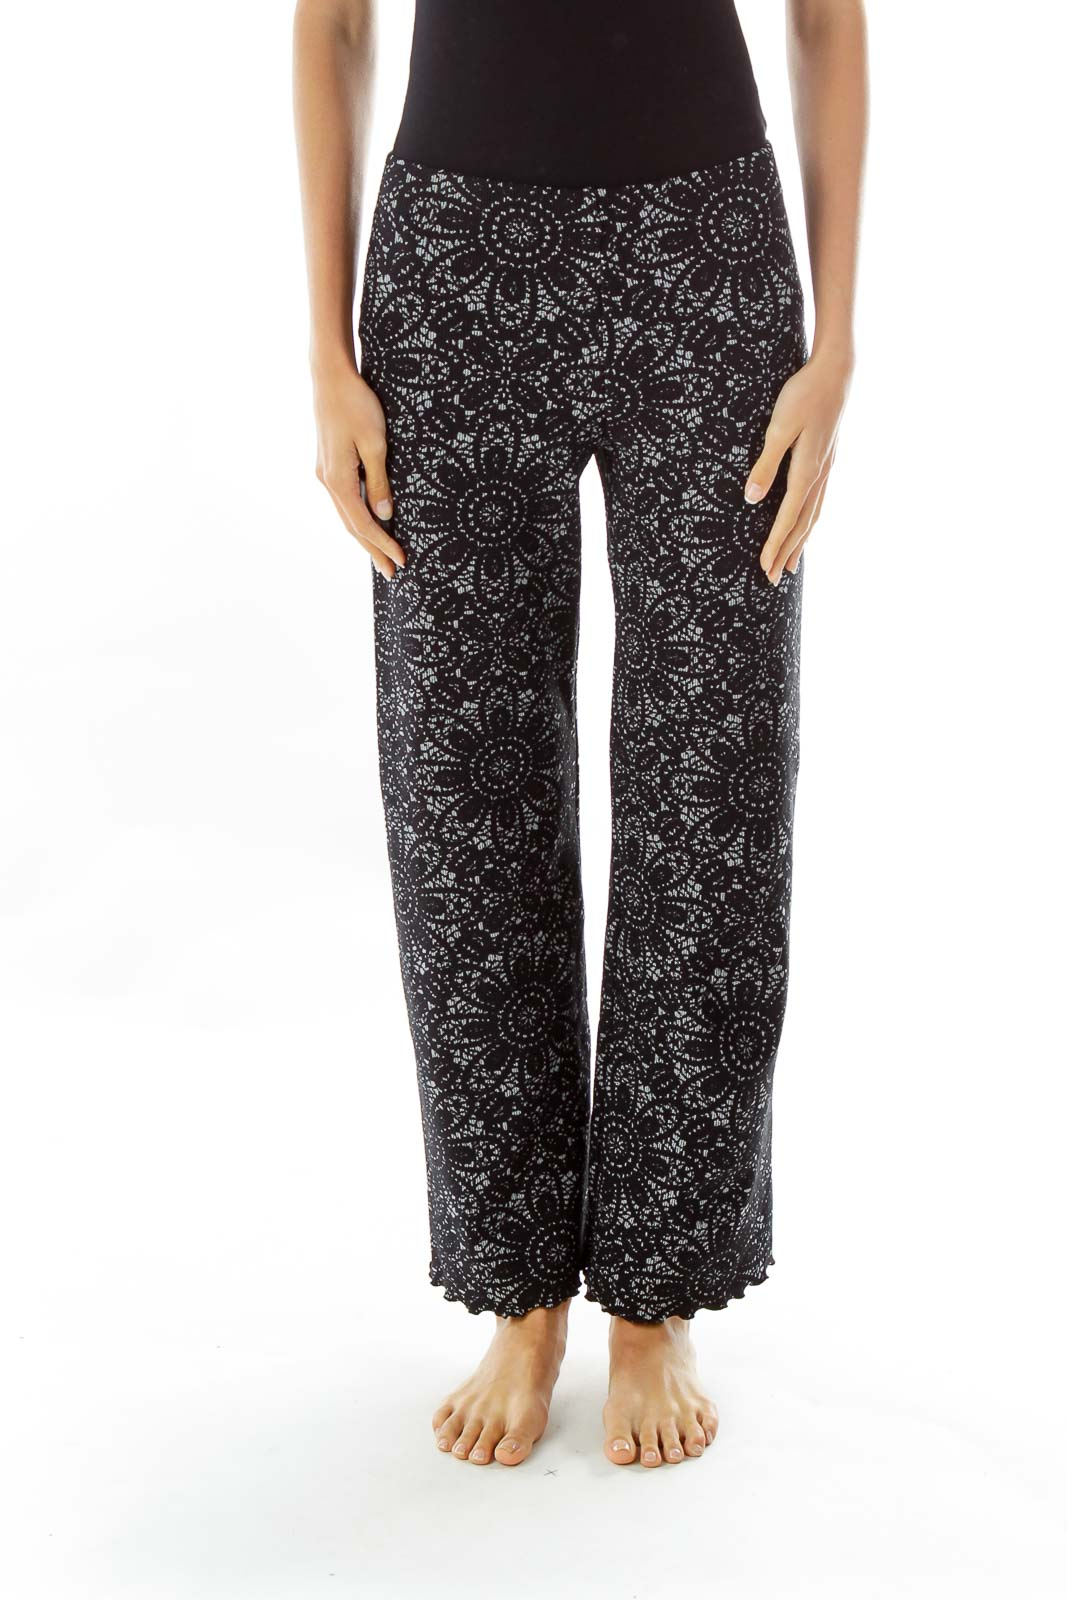 Black Gray Flower Print Textured Stretch Pants